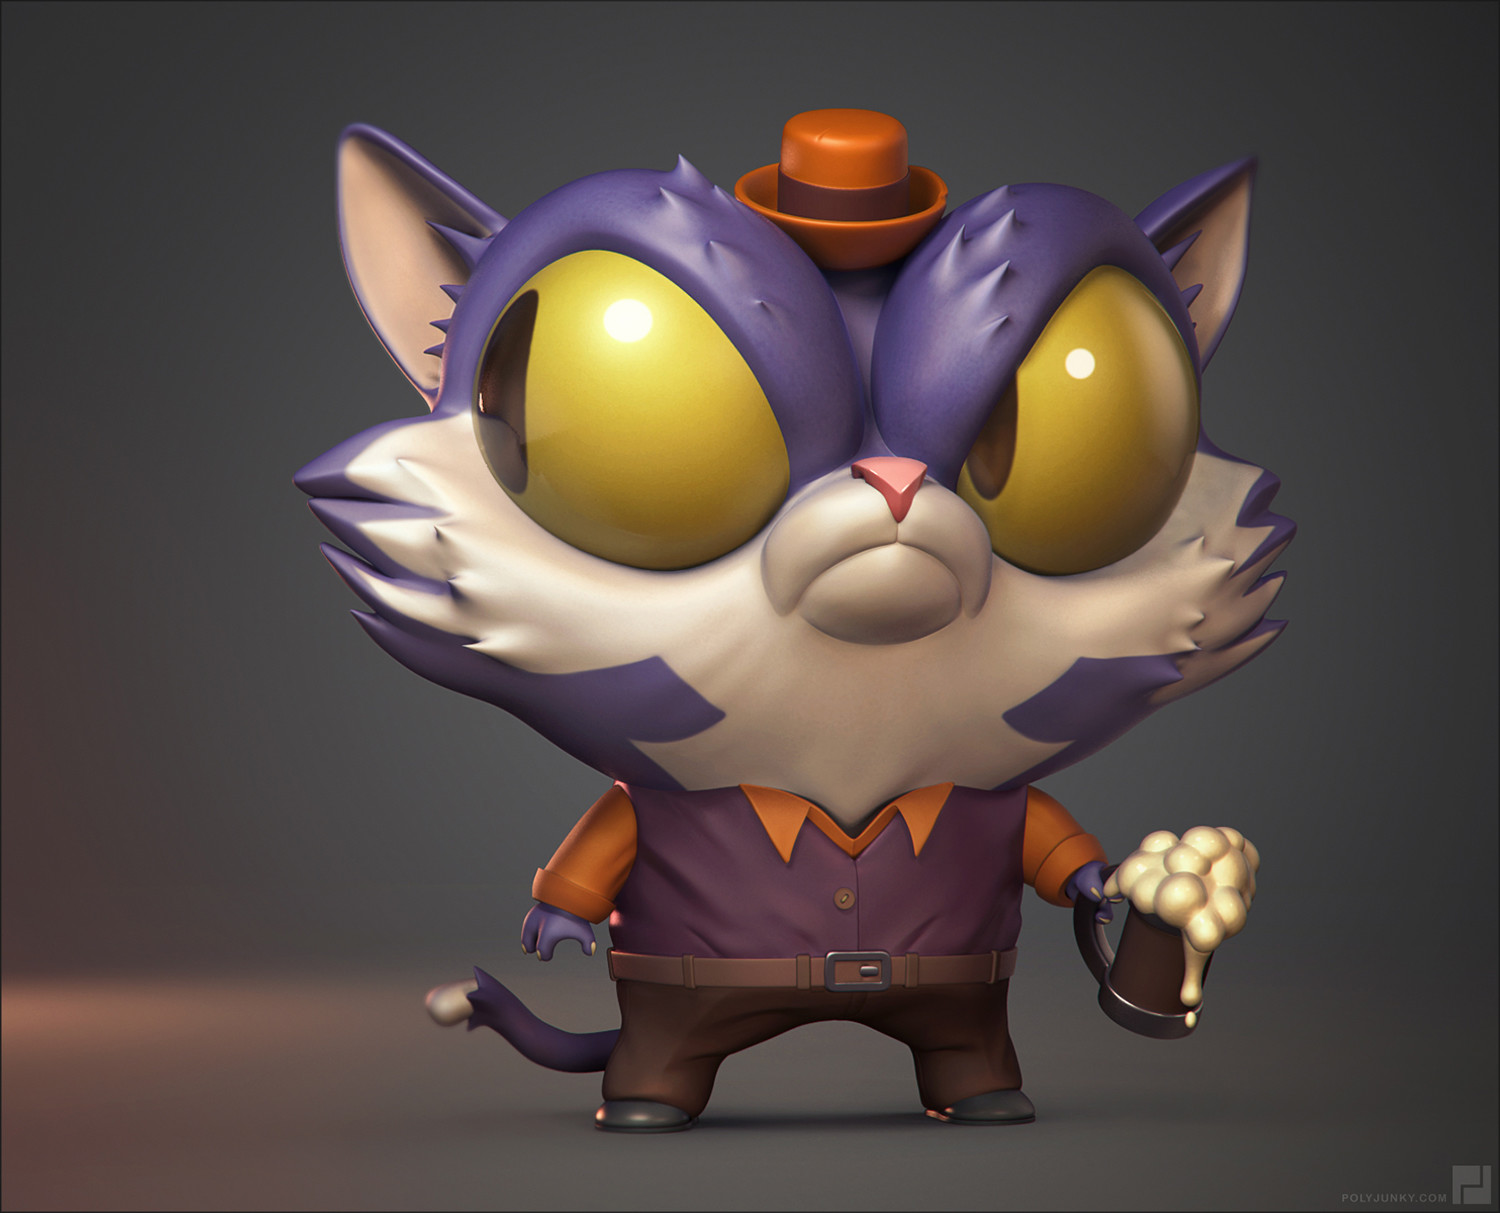 Cat in a hat. Old Keyshot render